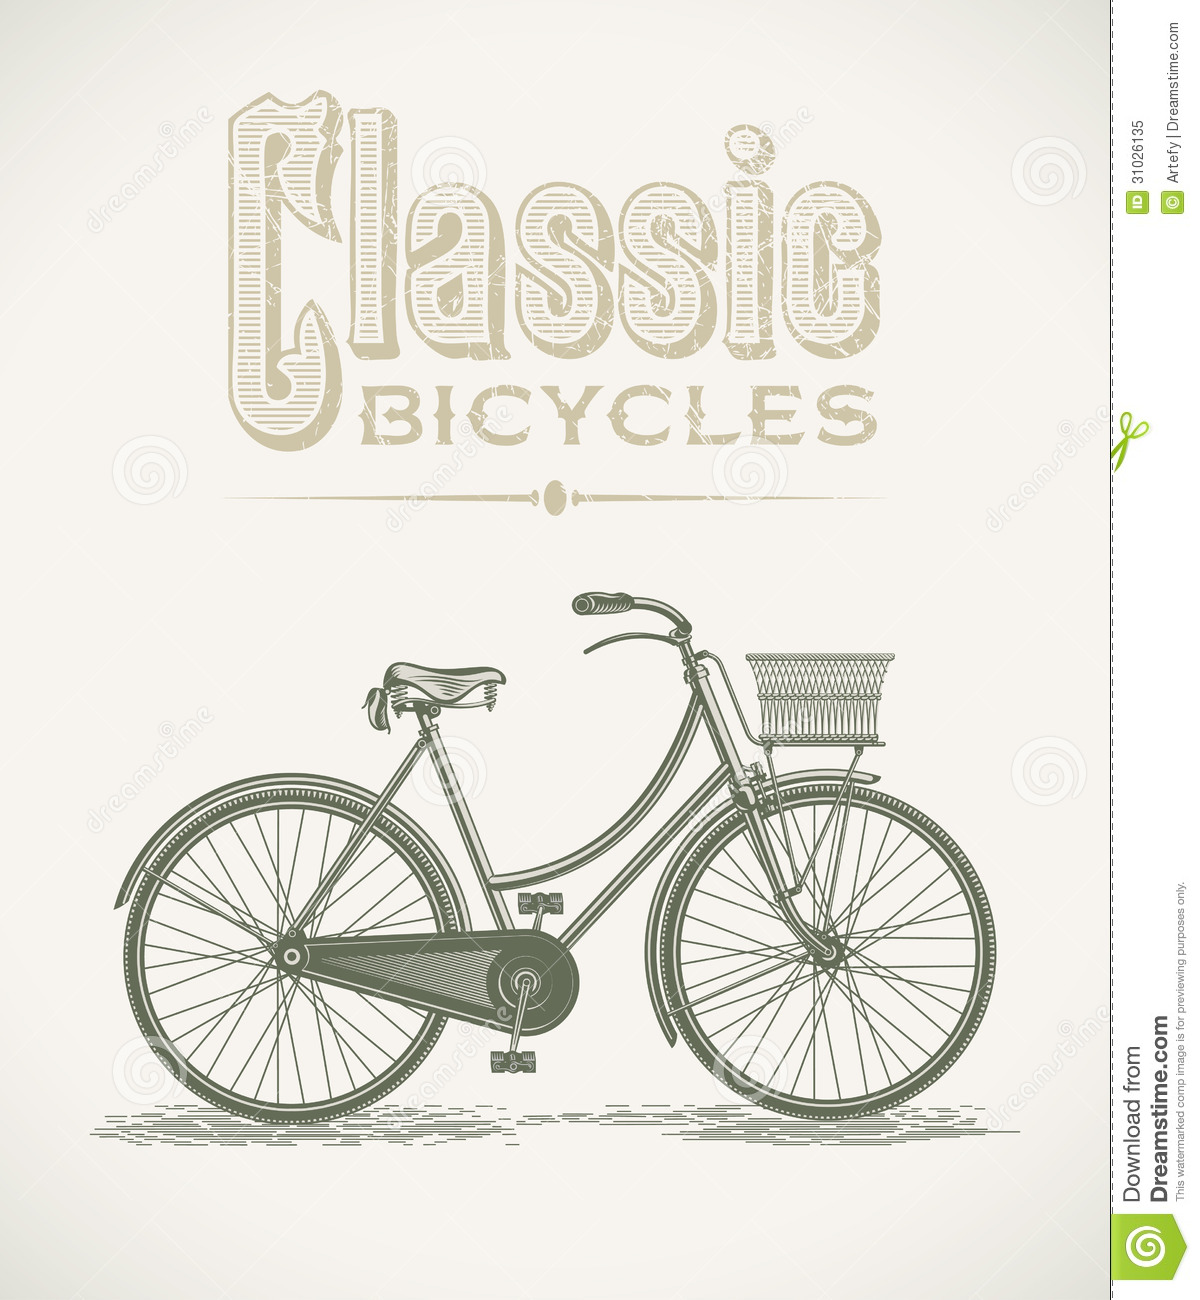 Classic ladys bicycle